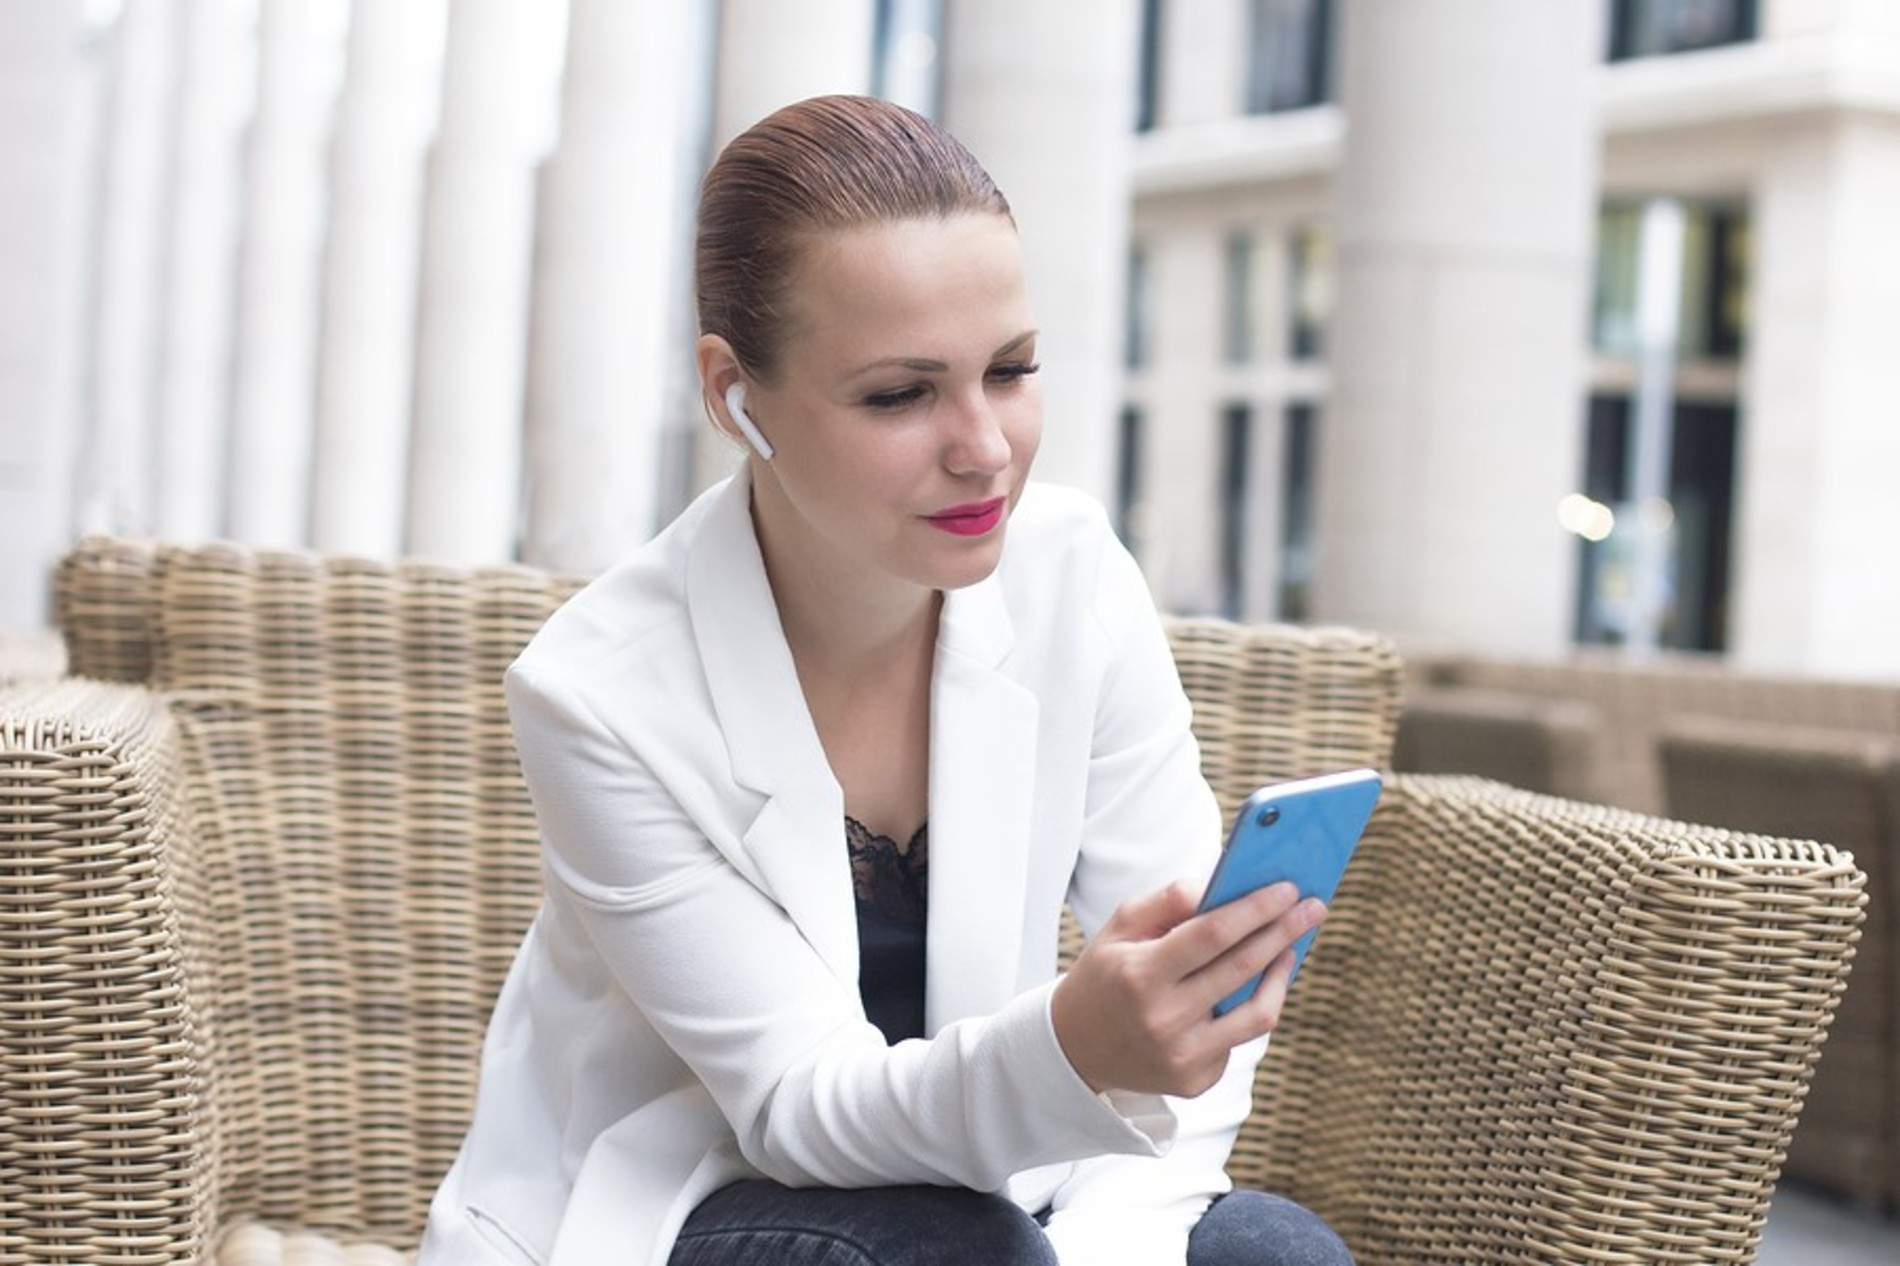 Woman looking intently at her phone.